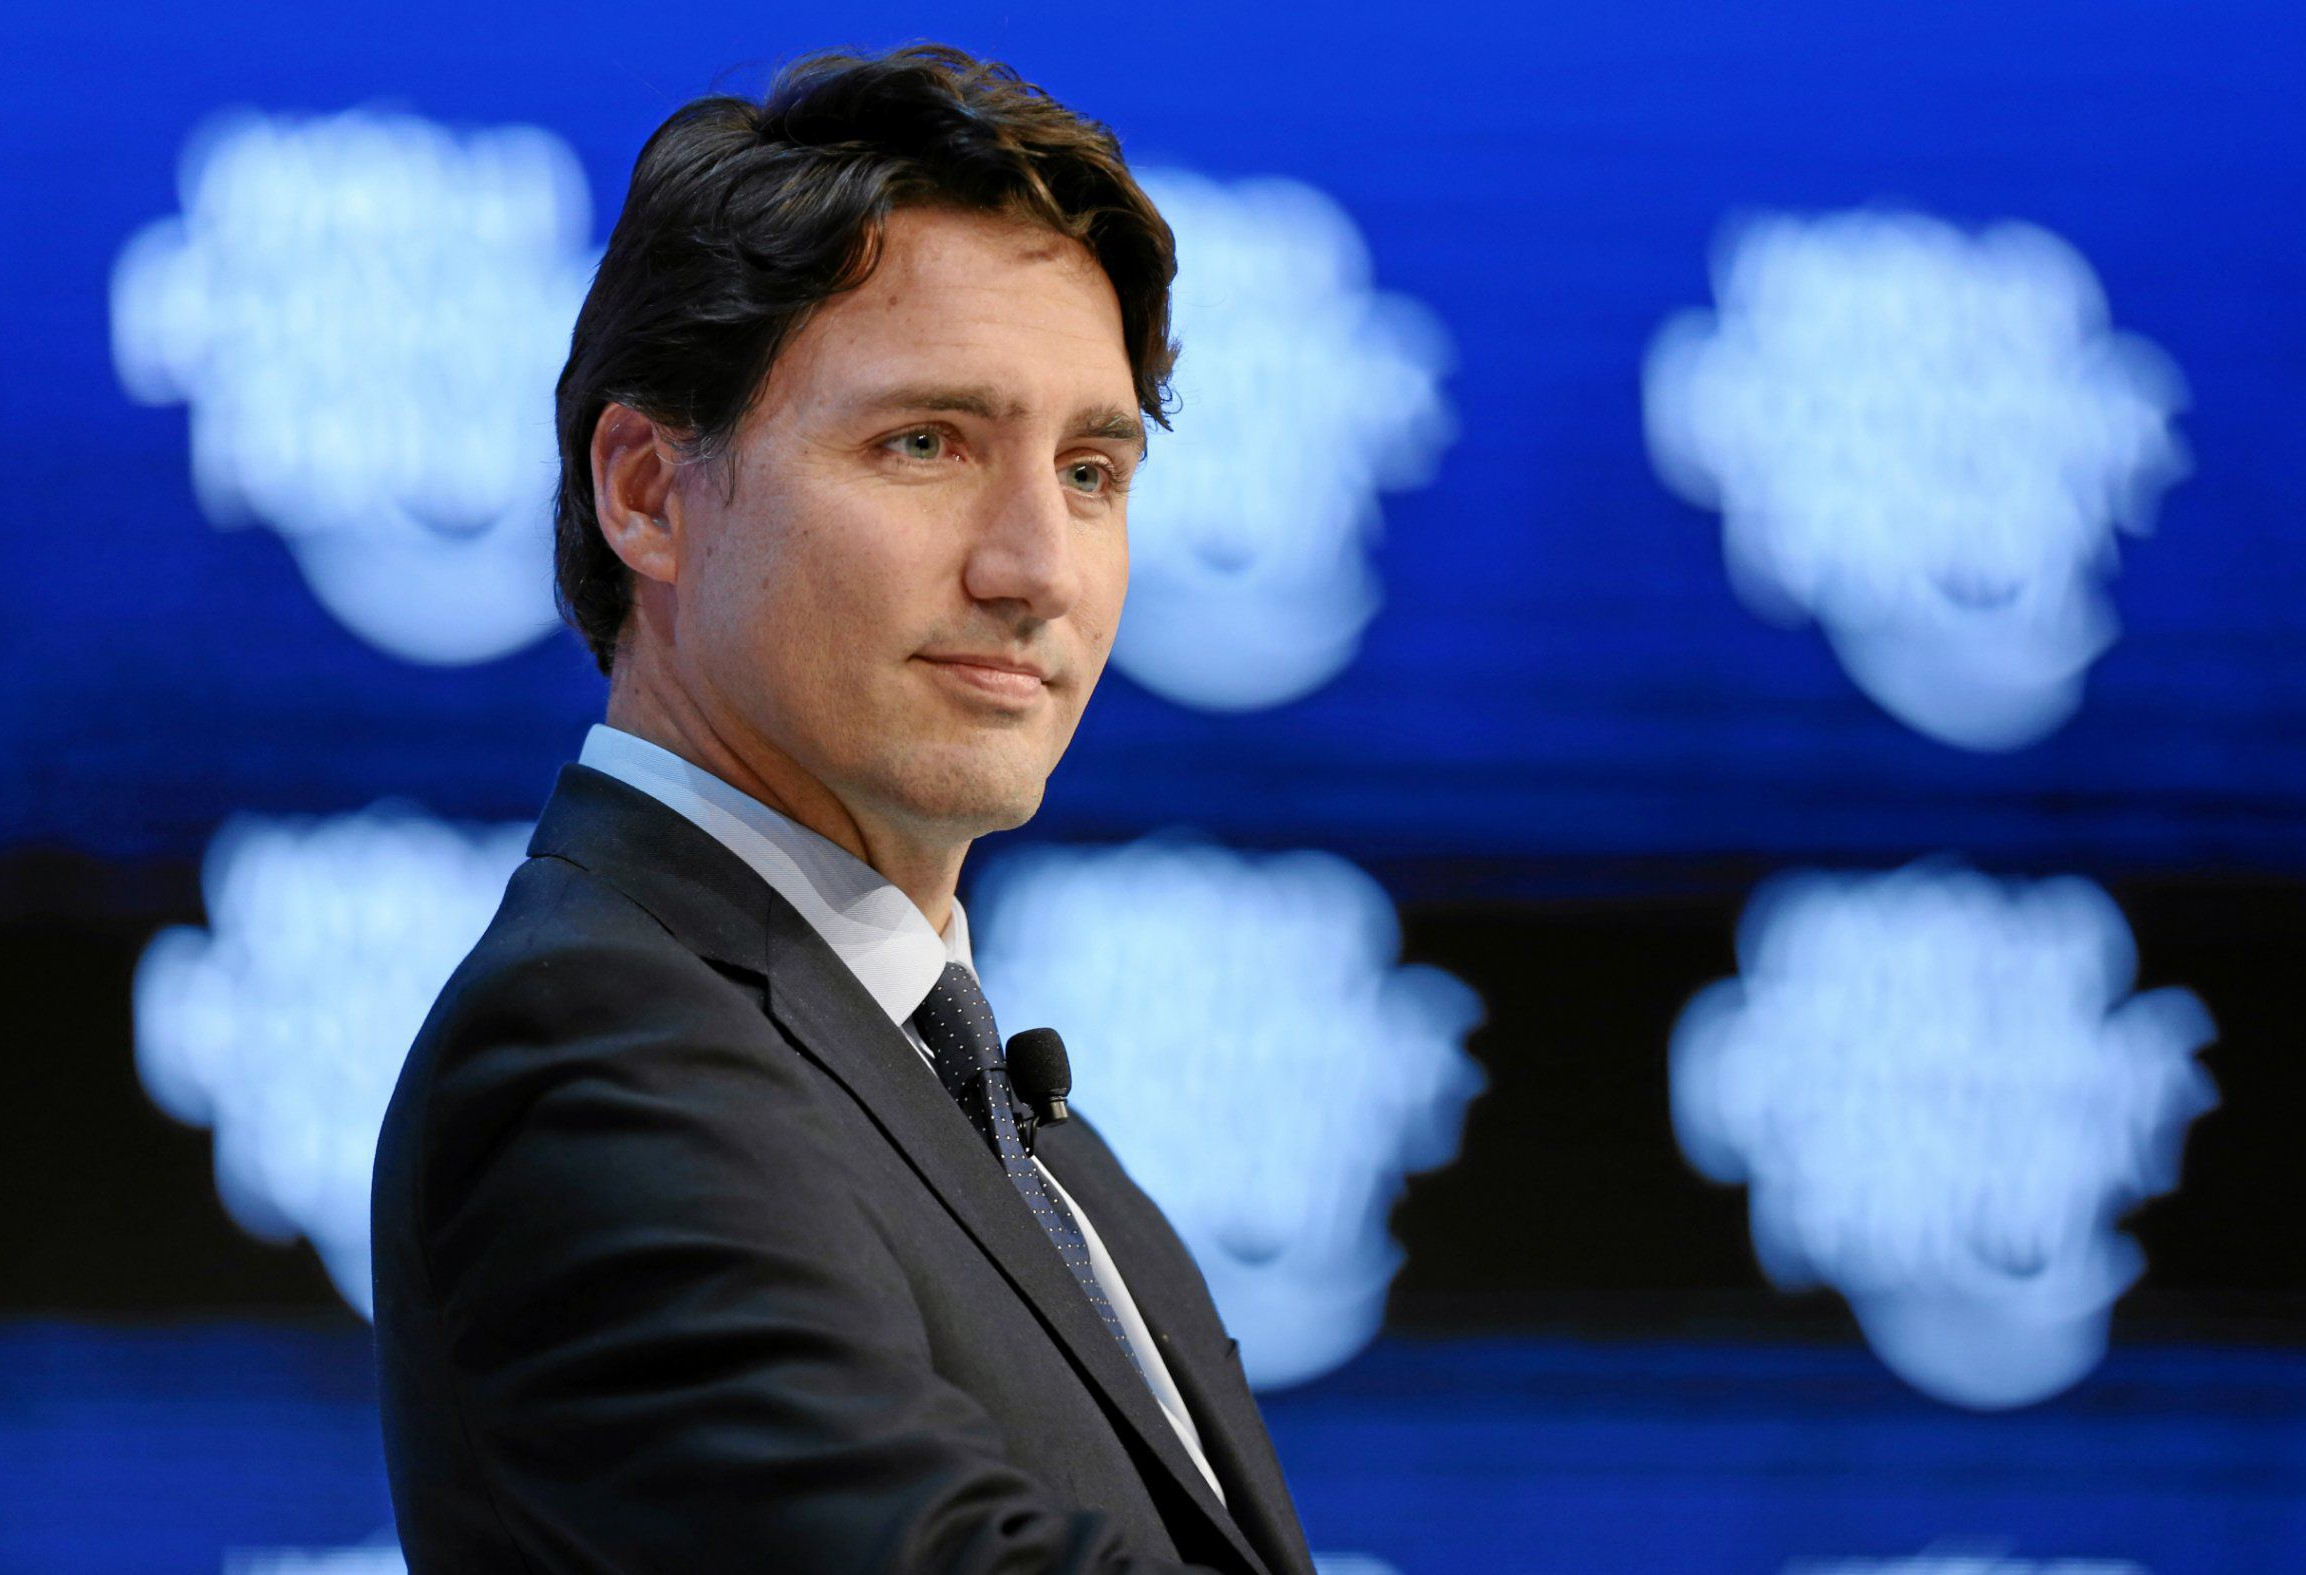 Mandatory Credit: Photo by Action Press/REX/Shutterstock (5550467l) Justin Trudeau - The Canadian Opportunity World Economic Forum, Davos, Switzerland - 20 Jan 2016